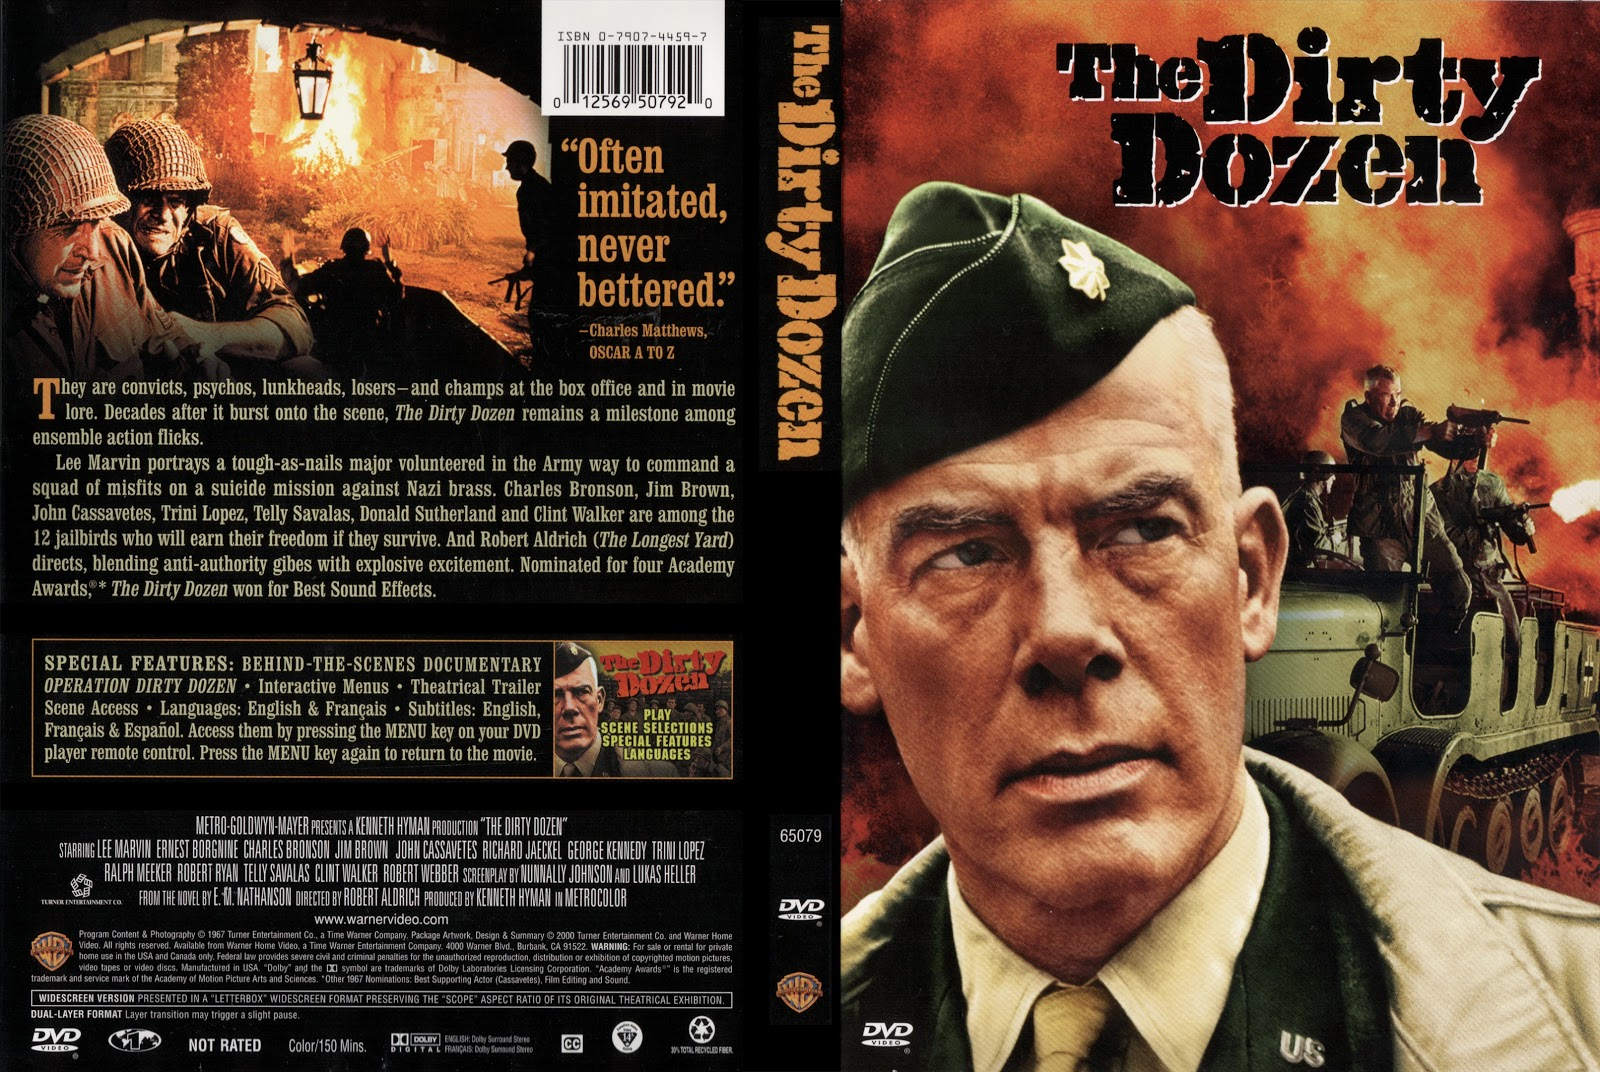 DVD cover front and back The Dirty Dozen movieloversreviews.blogspot.com